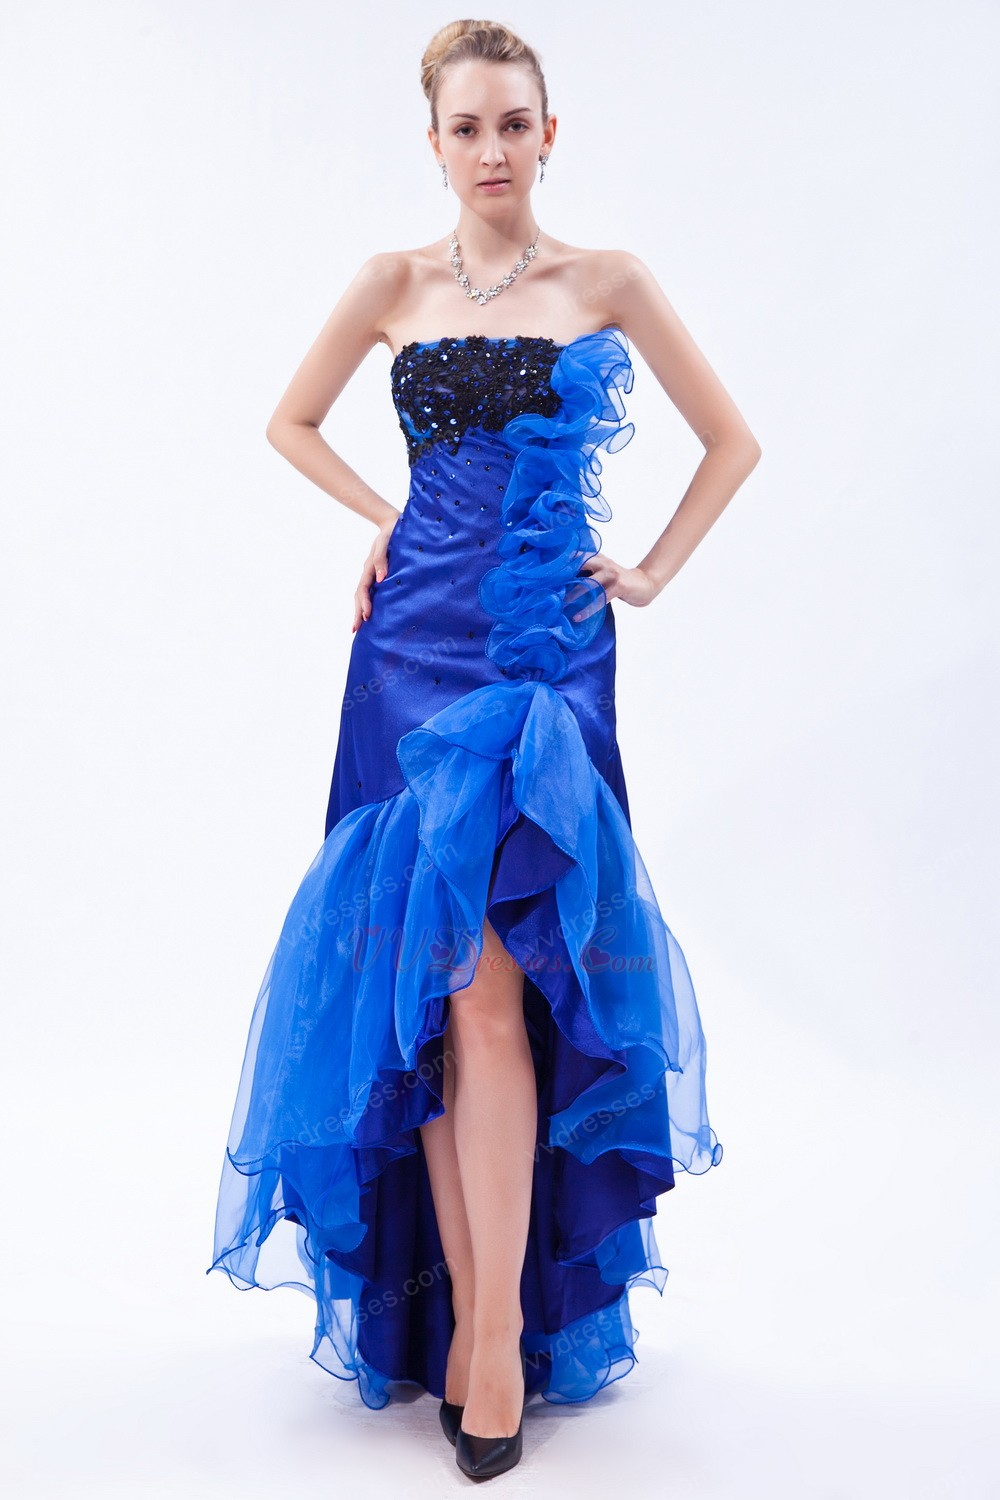 Blue prom dresses dressed up girl for Blue and black wedding dresses